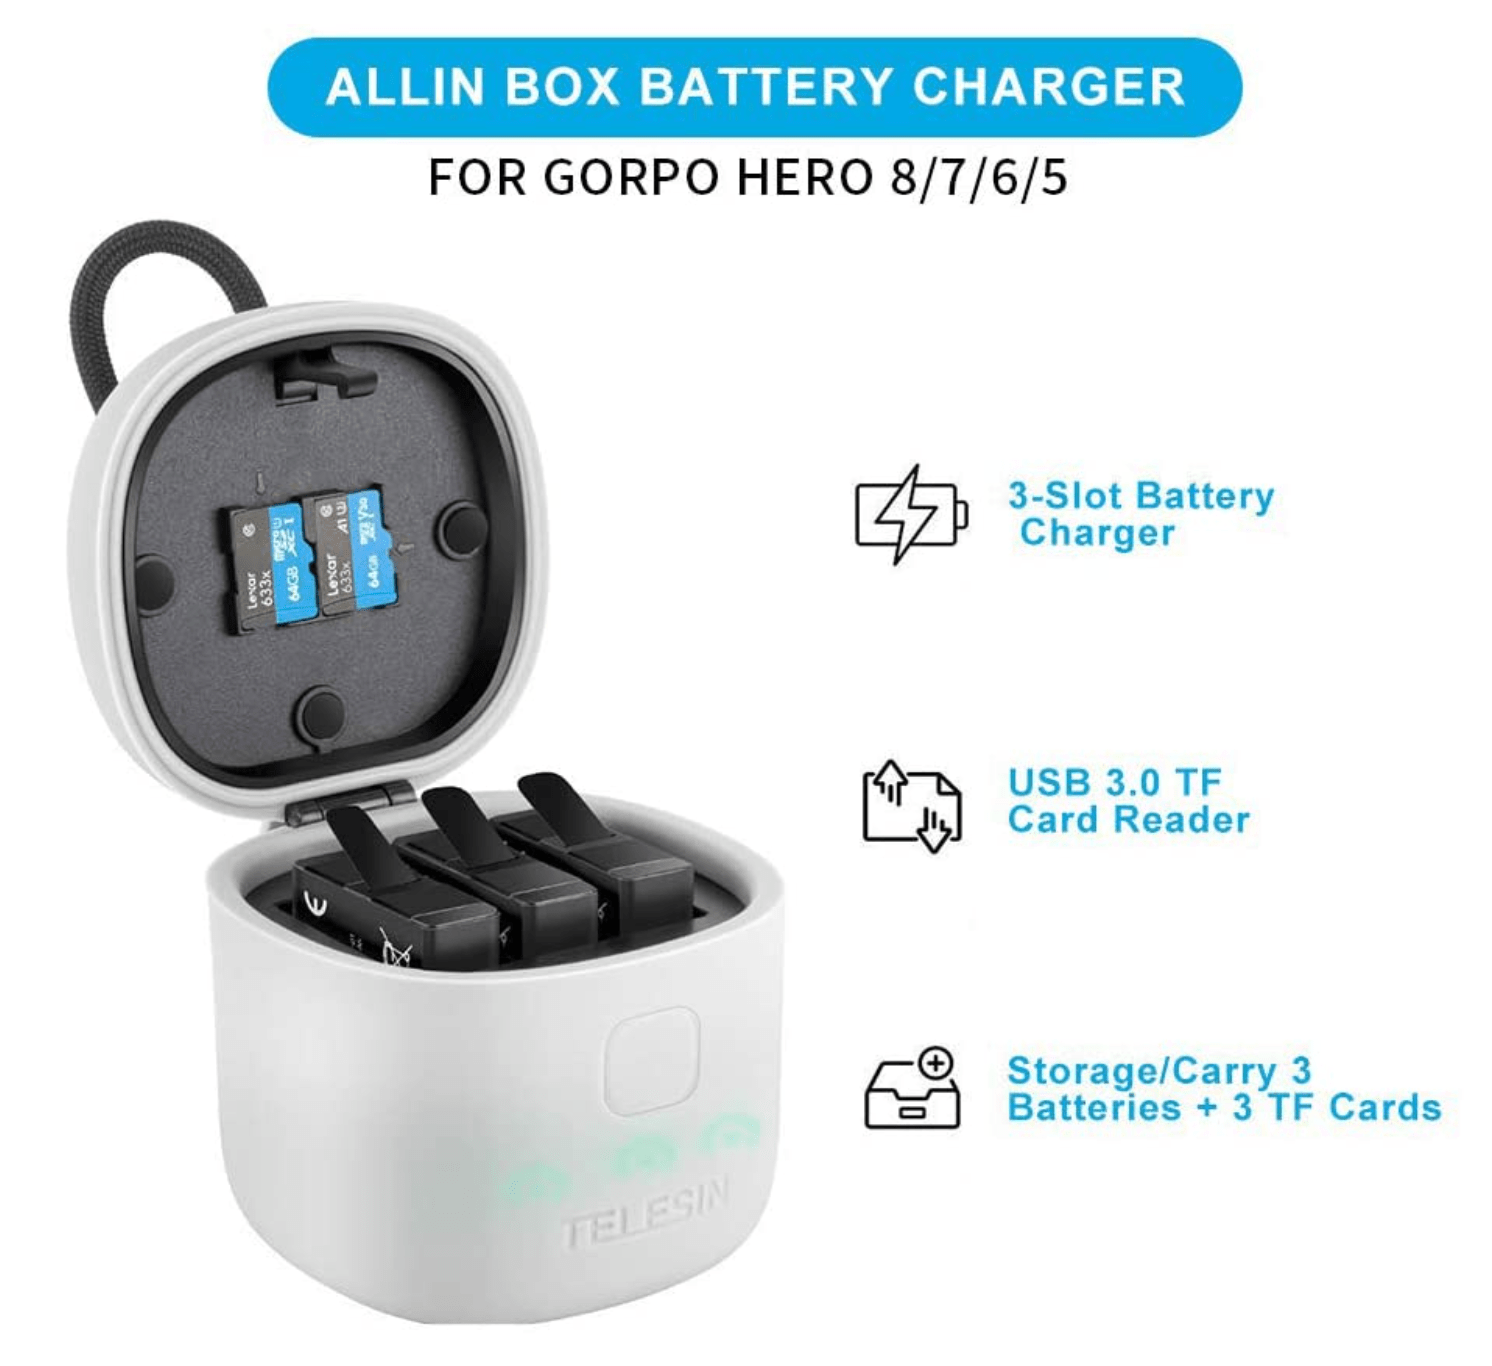 TELESIN Allin Box Battery Charger Review